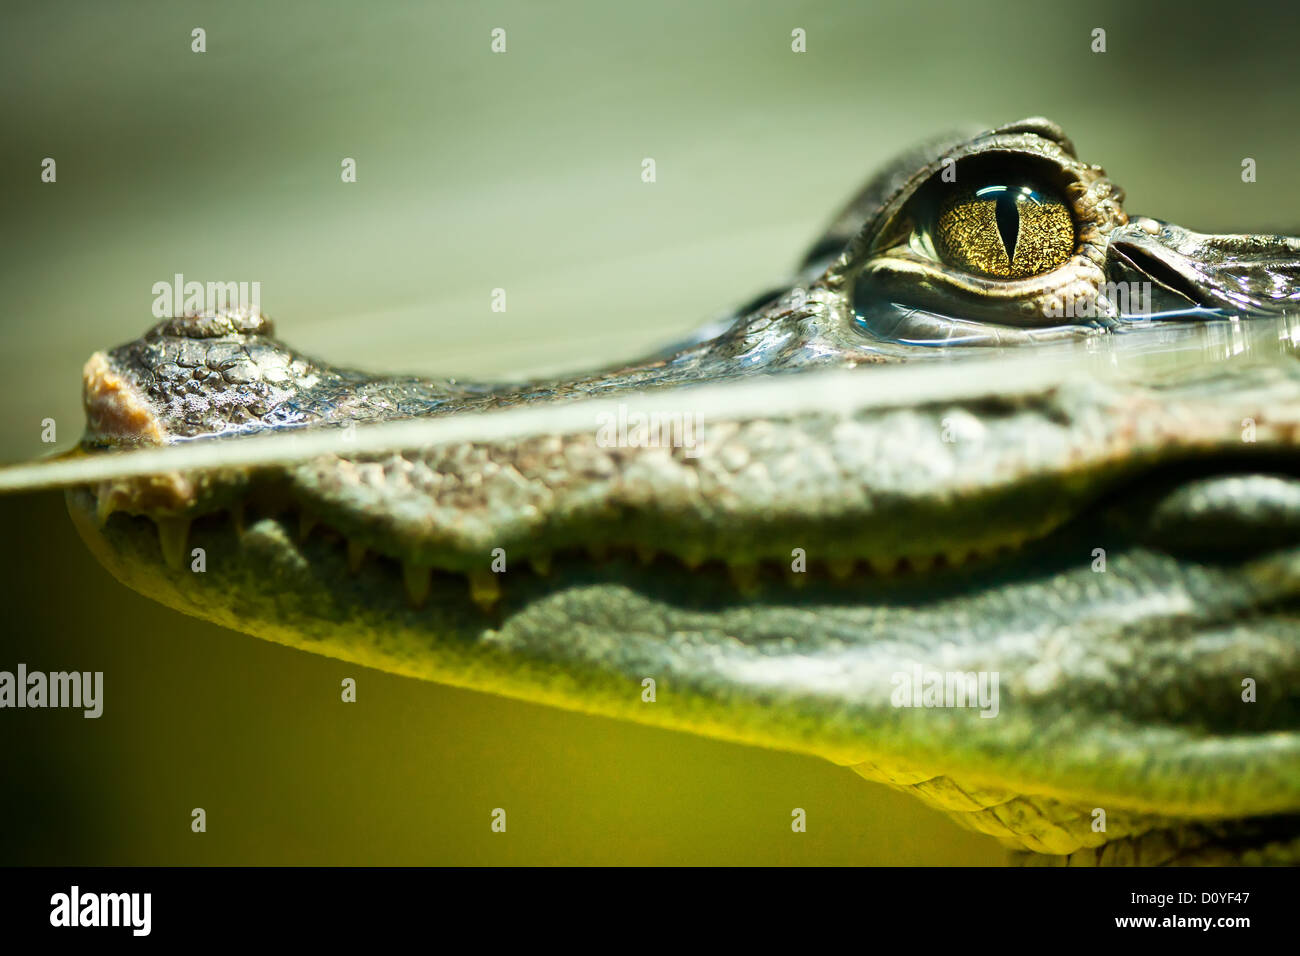 Caiman crocodilus Photo Stock